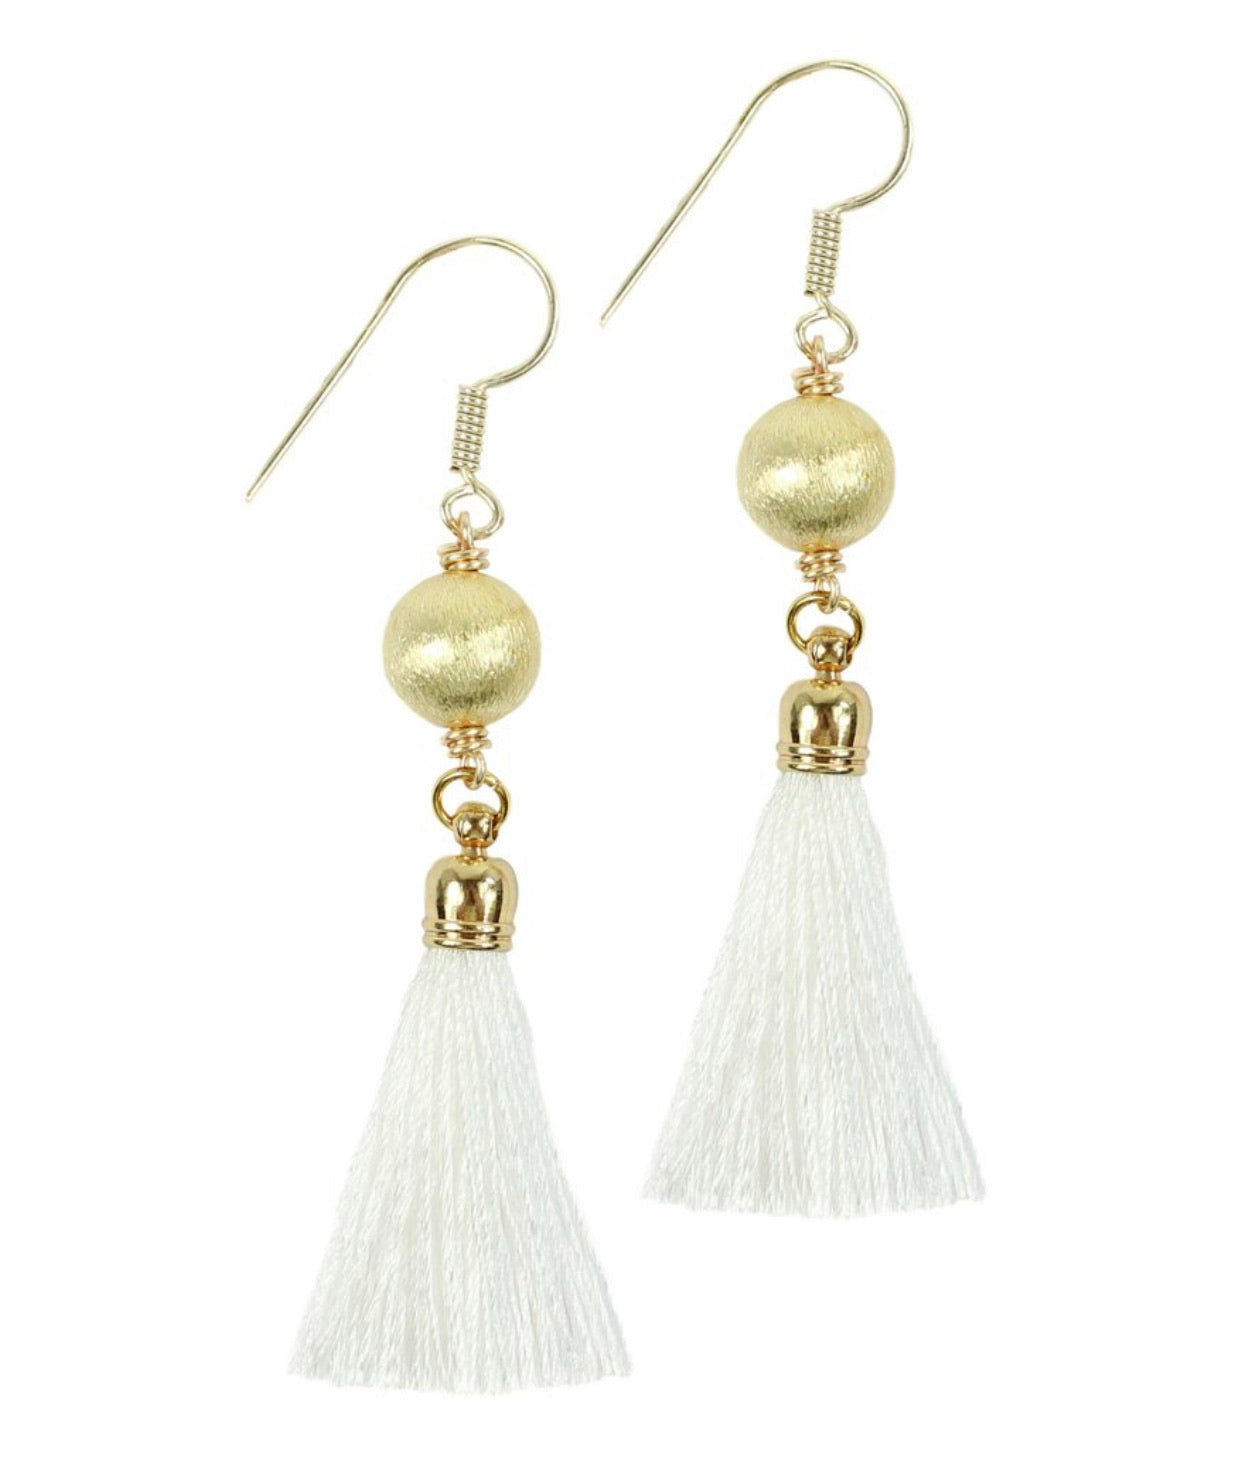 The Fay Earring - White